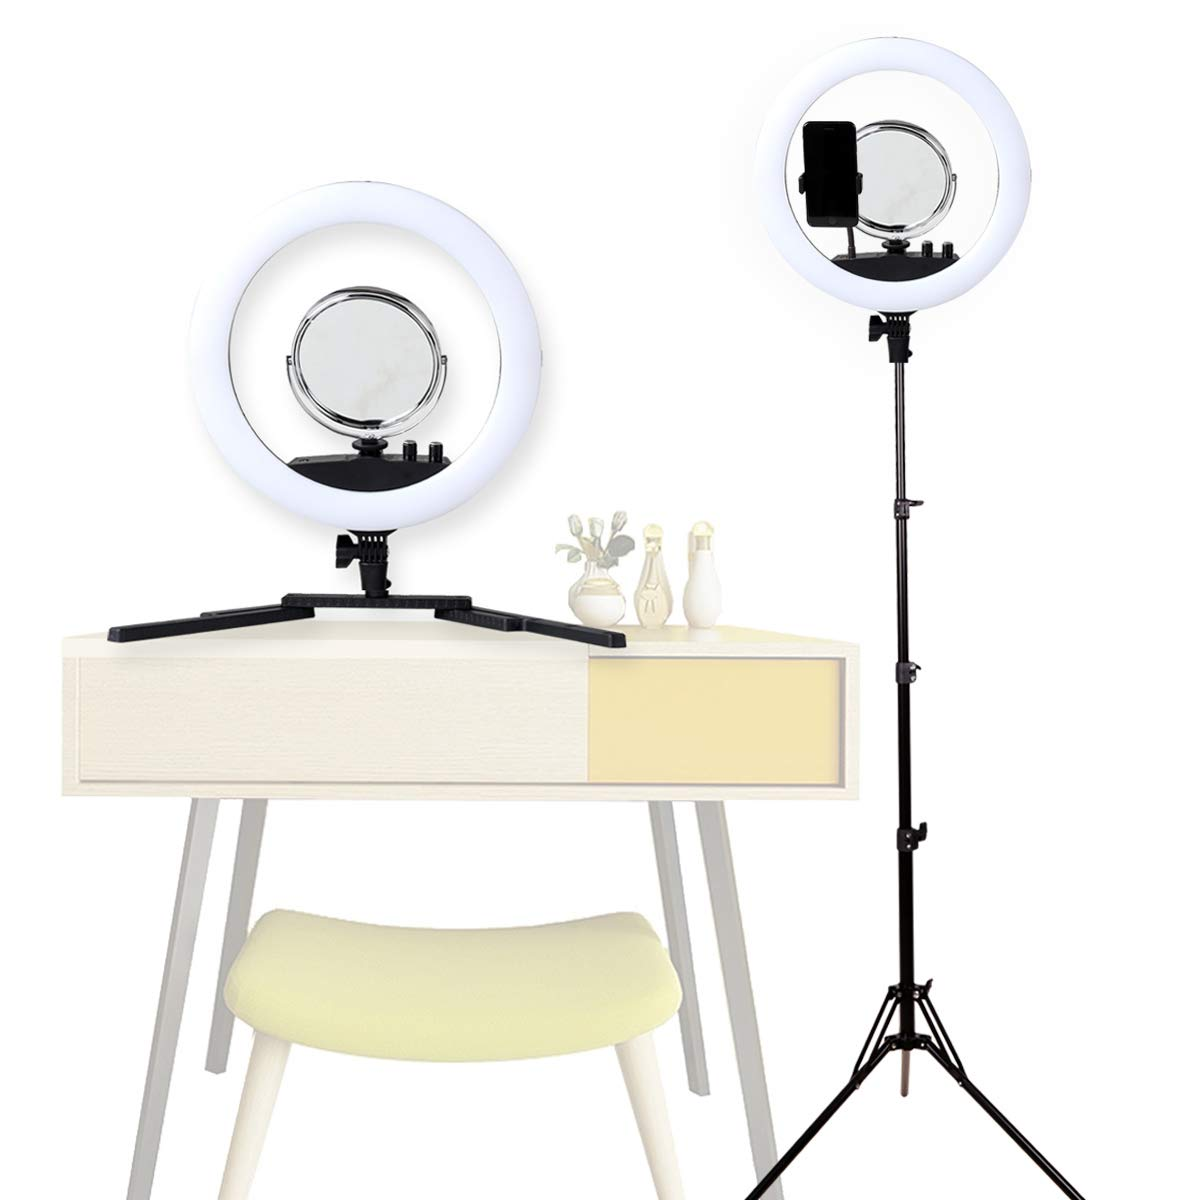 GSKAIWEN 12 Inch LED Adjustable Light 3000-5500K Self-Timer Lamp Ring Light Carrying Tripod and Bag with Make-Up Mirror,Recording Video, Photography(Black)